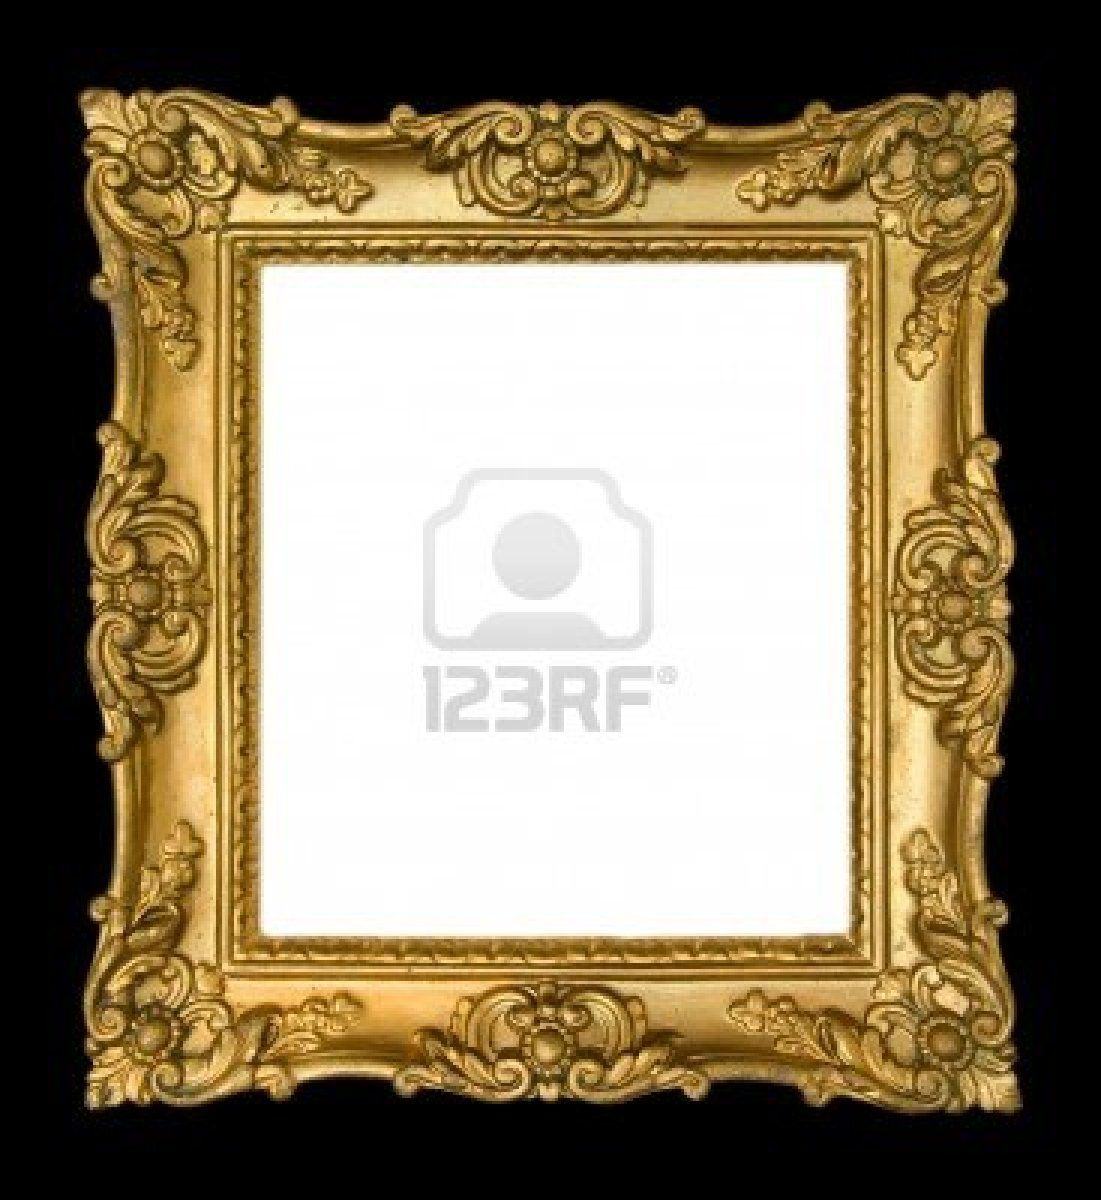 Ornate Vintage Gold Frame On Black Background Non Profit Social